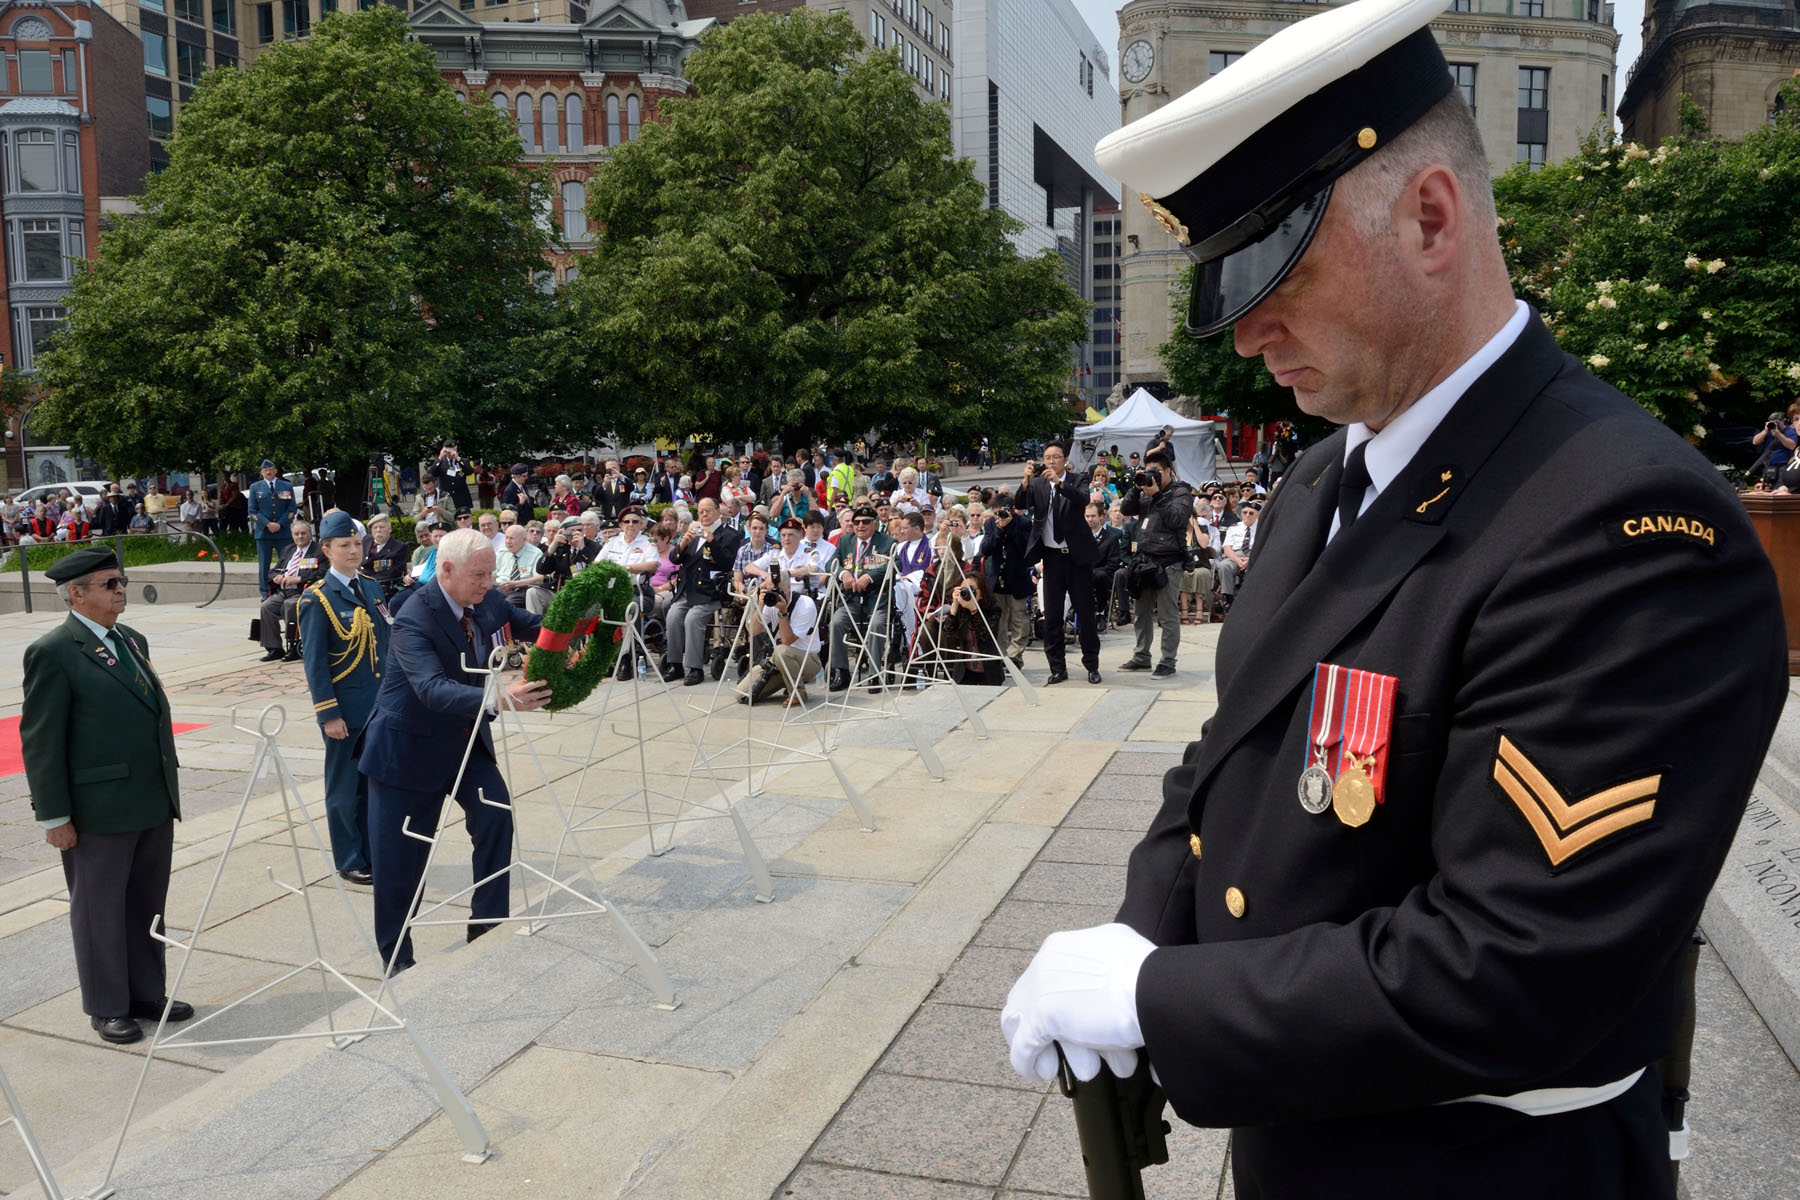 As commander-in-chief of Canada, His Excellency laid a wreath on behalf of the people of Canada, to pay tribute to the 26 000 Canadian men and women who came to the aid of South Koreans during the Korean War, and to the 516 Canadians who lost their lives in service to their country.